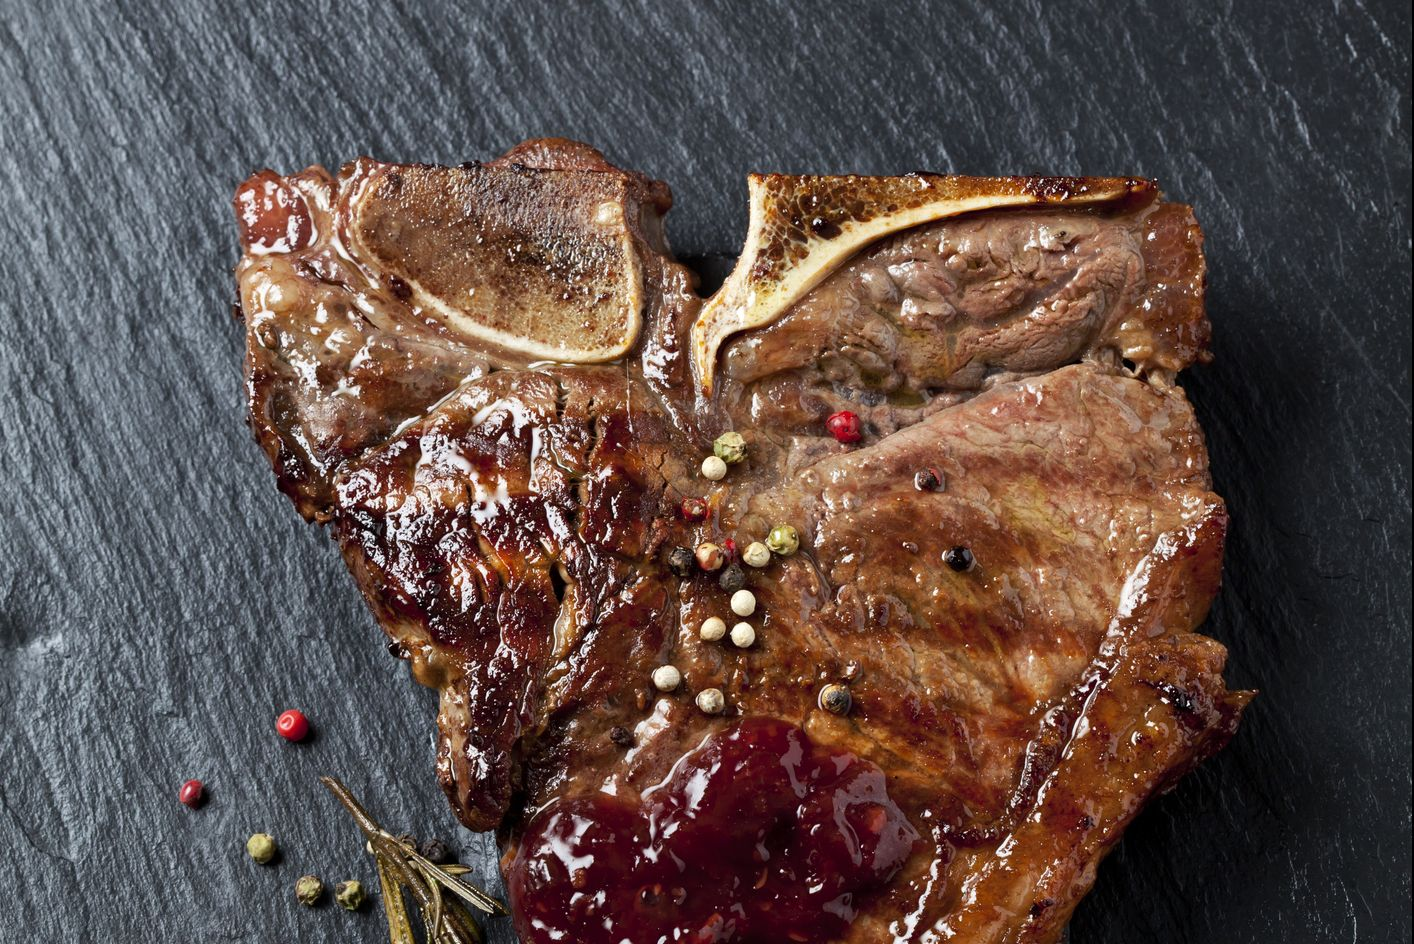 Porterhouse steak with herbs and spices